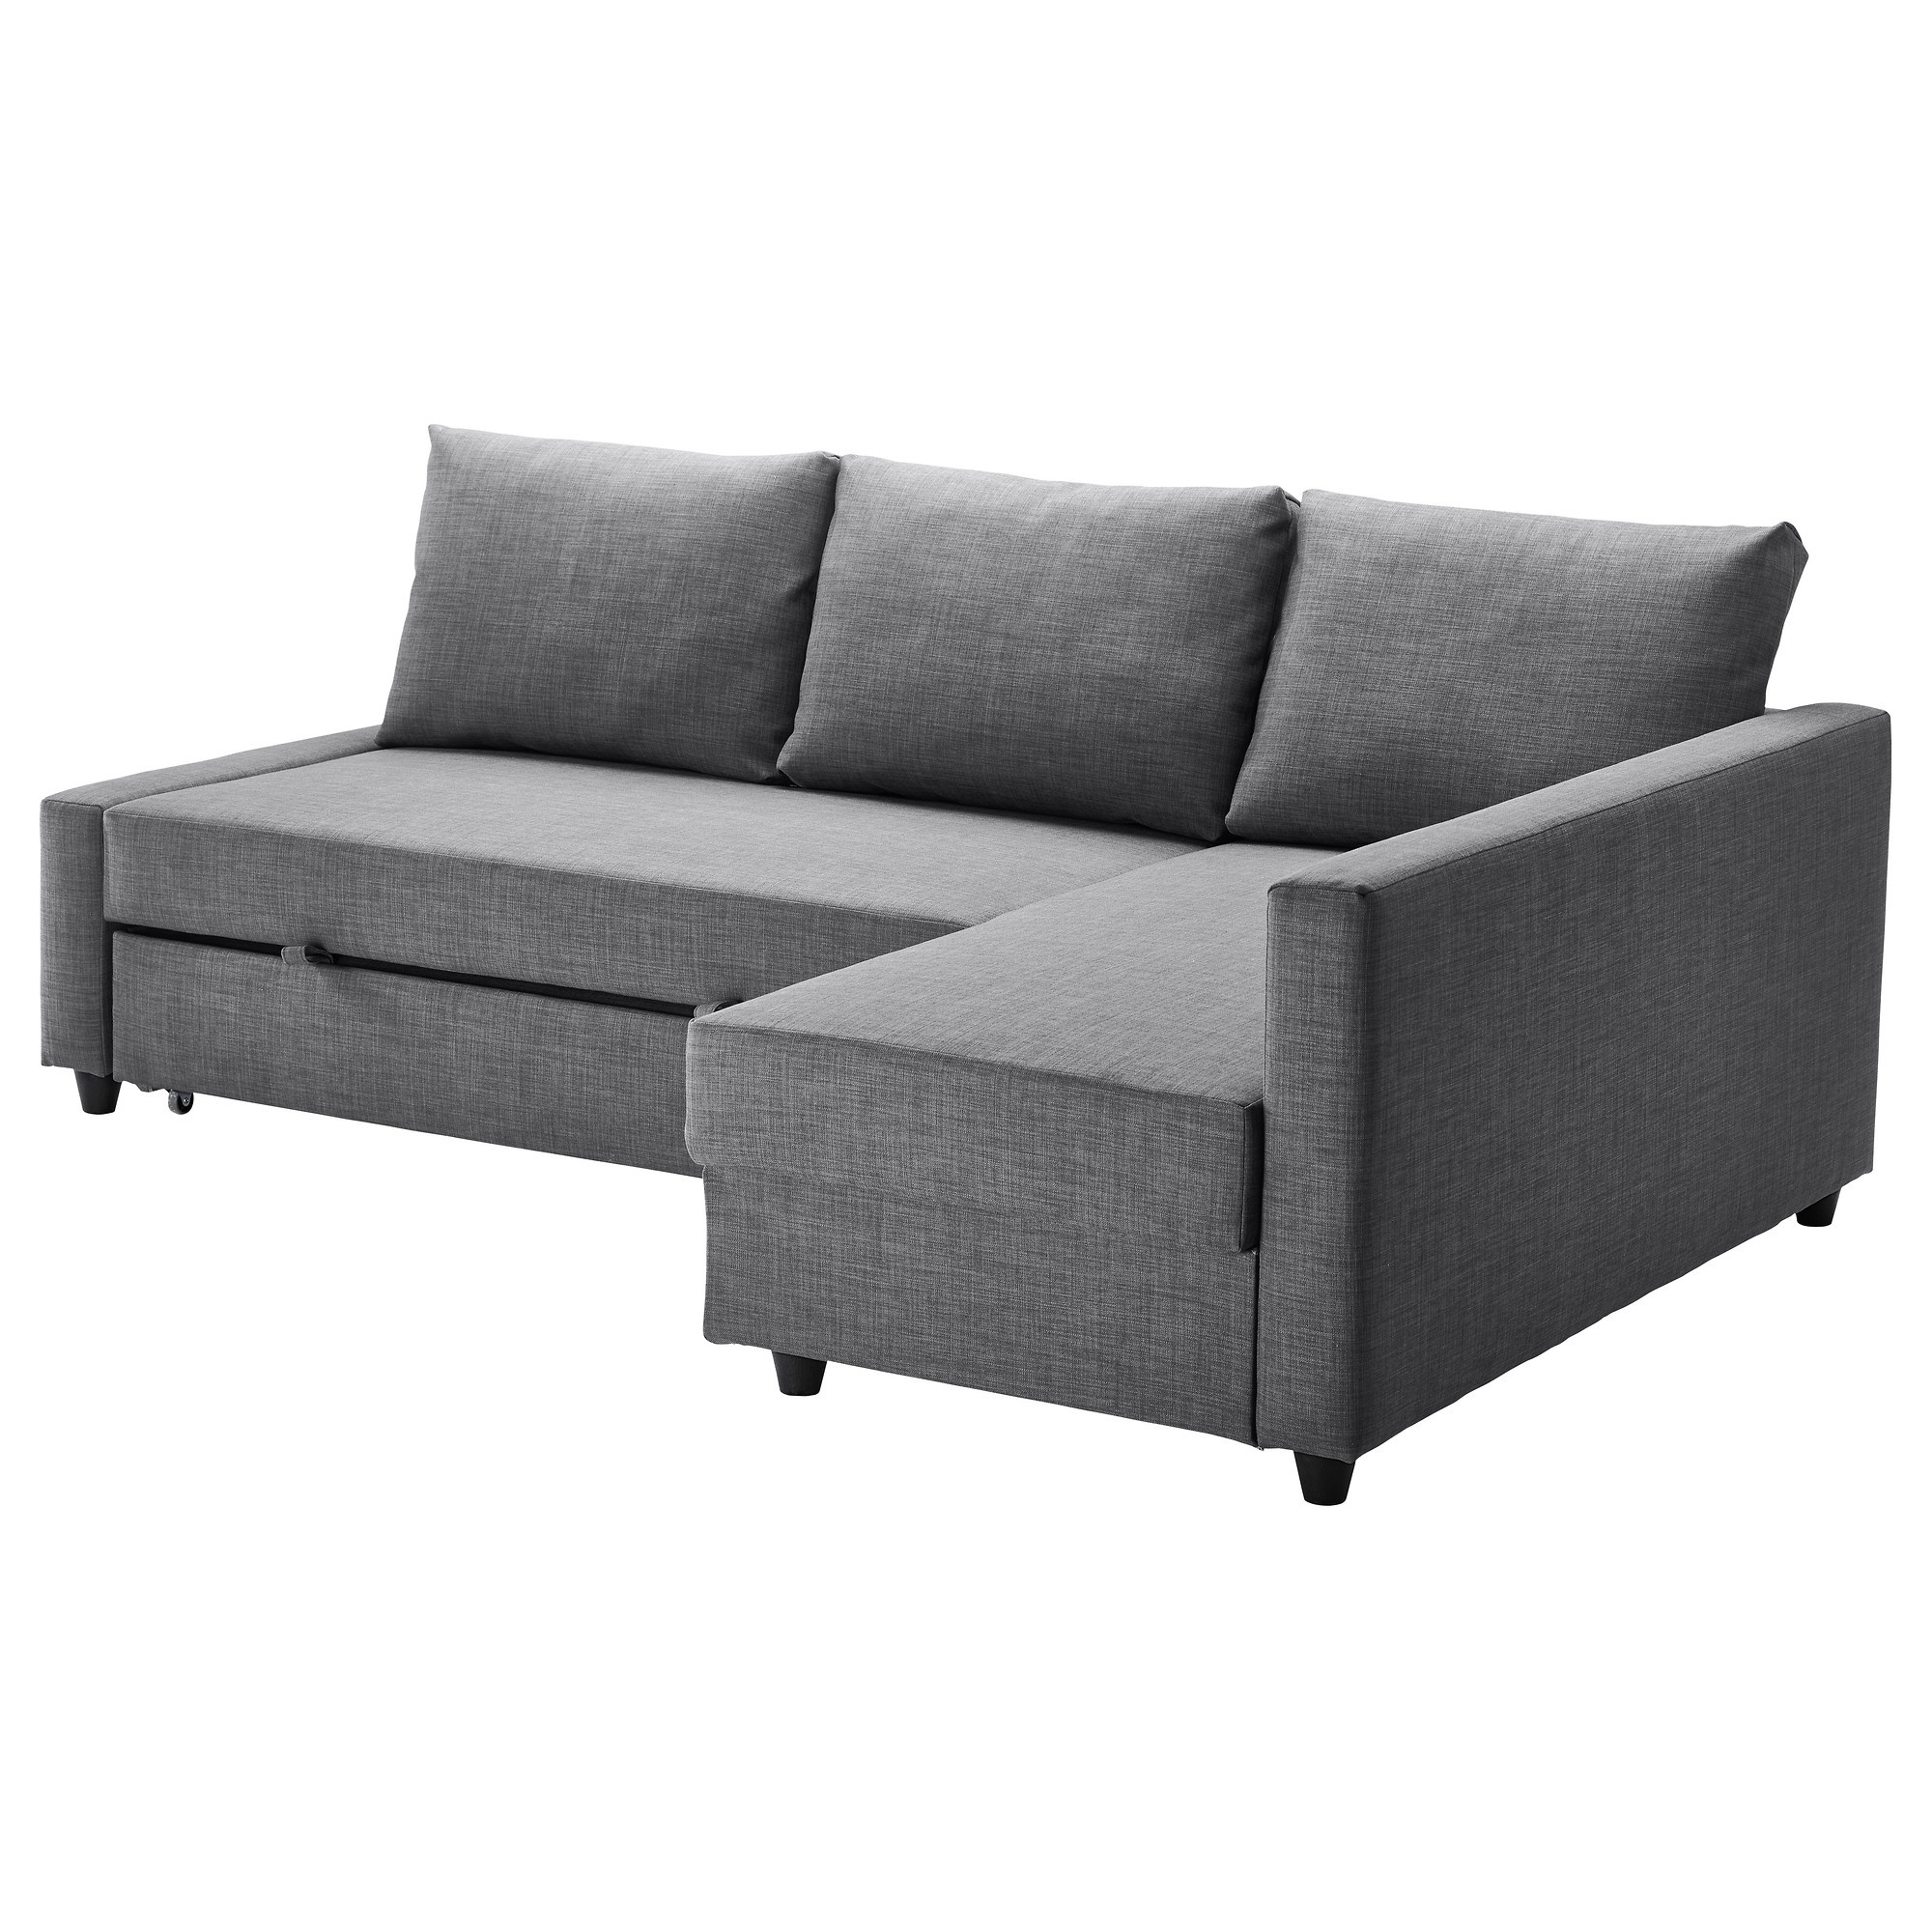 Interesting Sectional Sleeper Sofa Ikea Awesome Cheap Furniture For Ikea Sectional Sleeper Sofas (View 7 of 10)